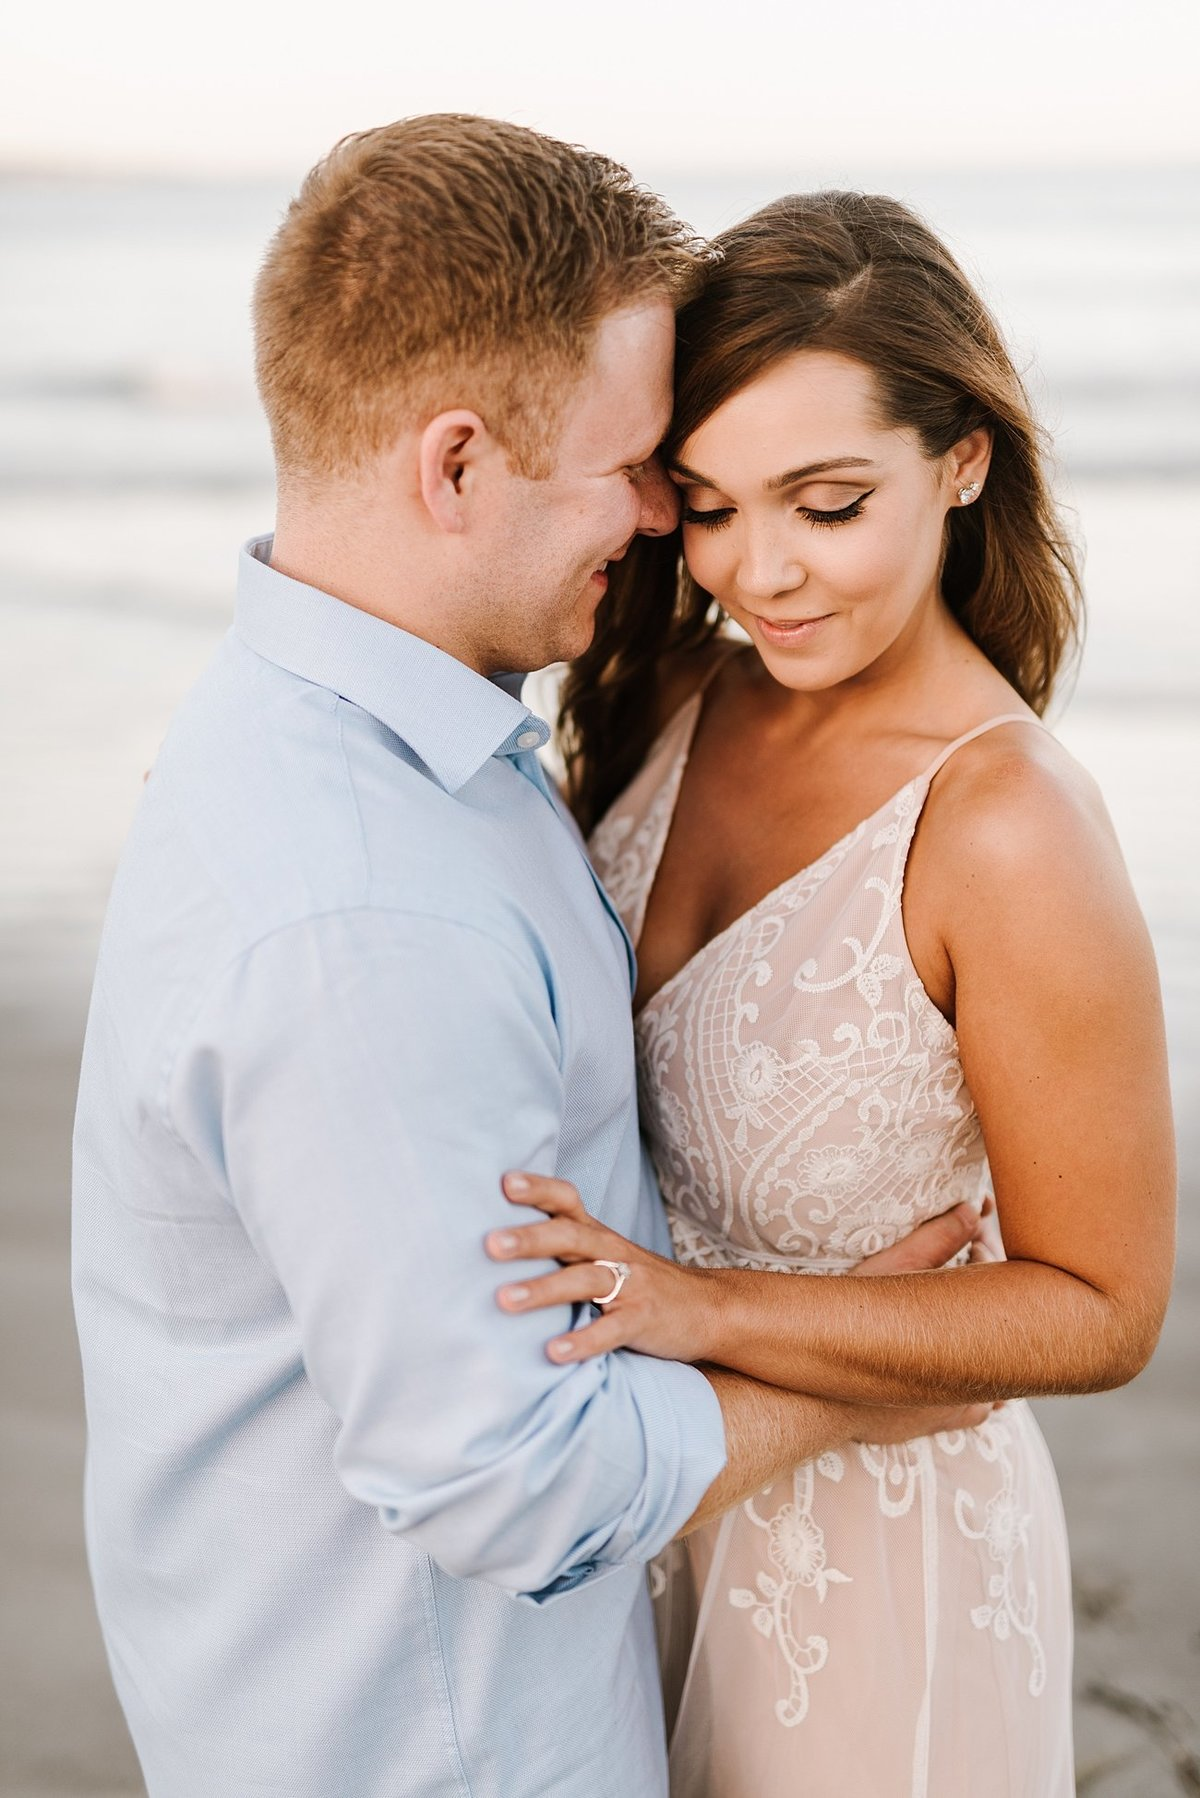 nahant-beach-engagement-session-boston-wedding-photographer-photo_0002